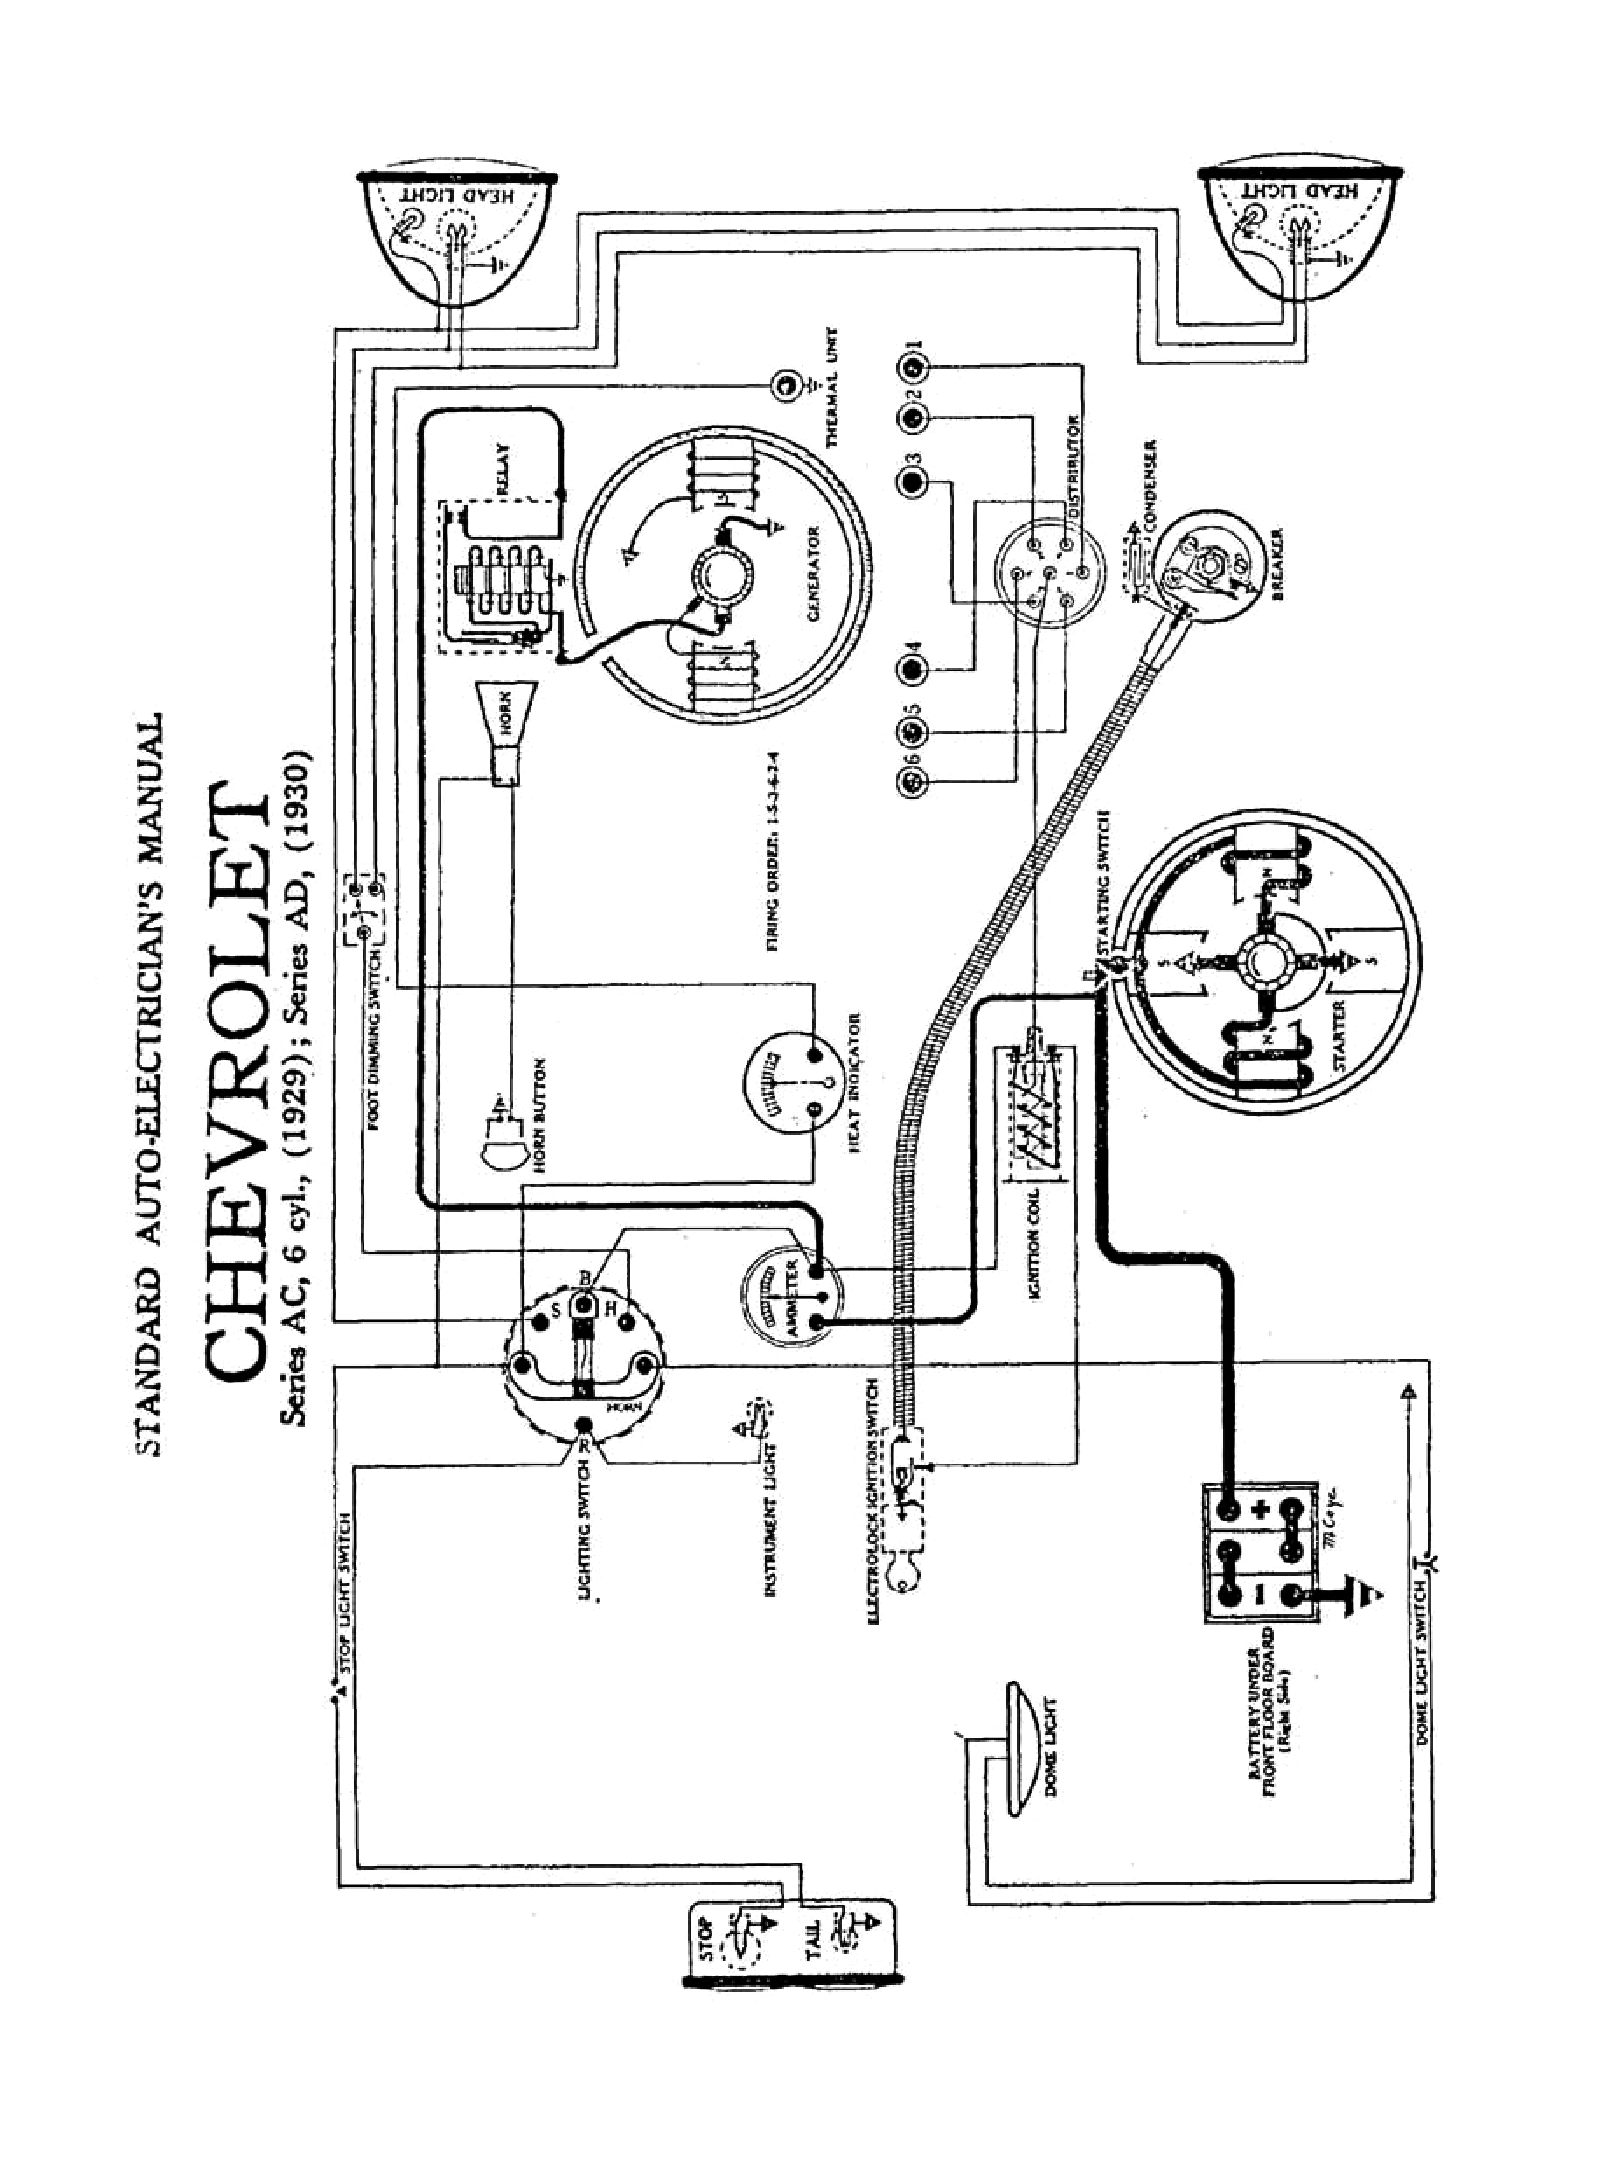 dynamo to alternator conversion wiring diagram car ignition system hitachi for farmall cub allis